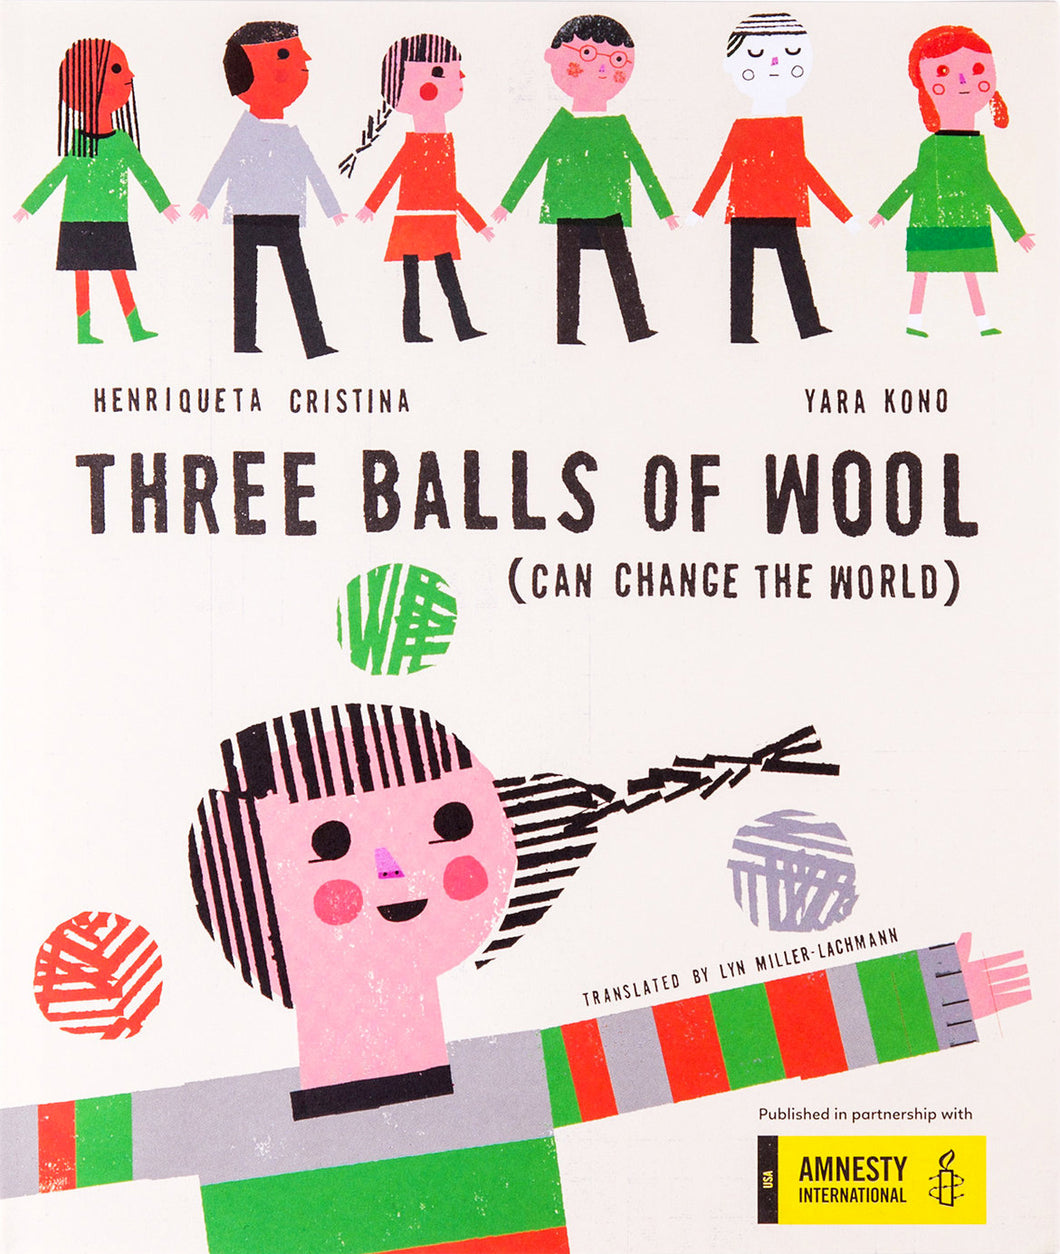 Three Balls of Wool (Can Change the World) by Henriqueta Cristina and Yara Kono